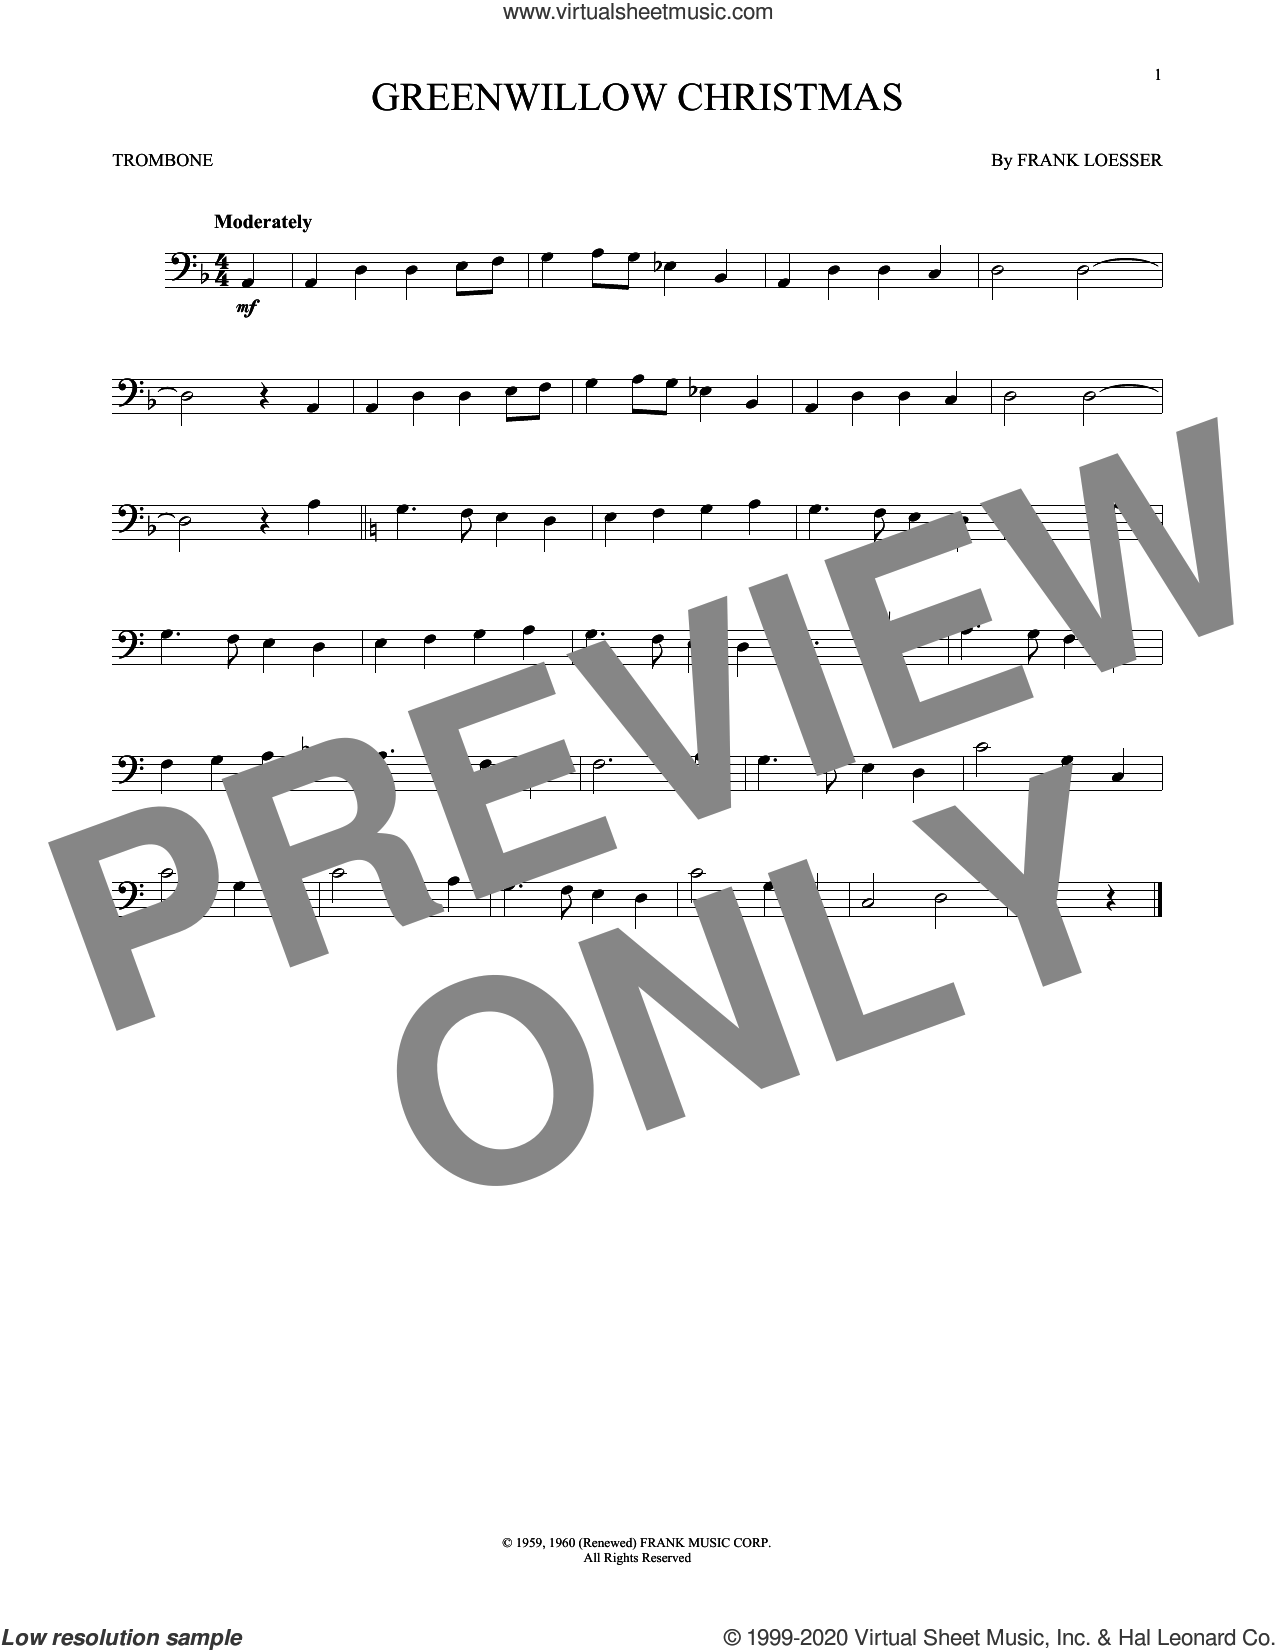 Greenwillow Christmas sheet music for trombone solo by Frank Loesser, intermediate skill level